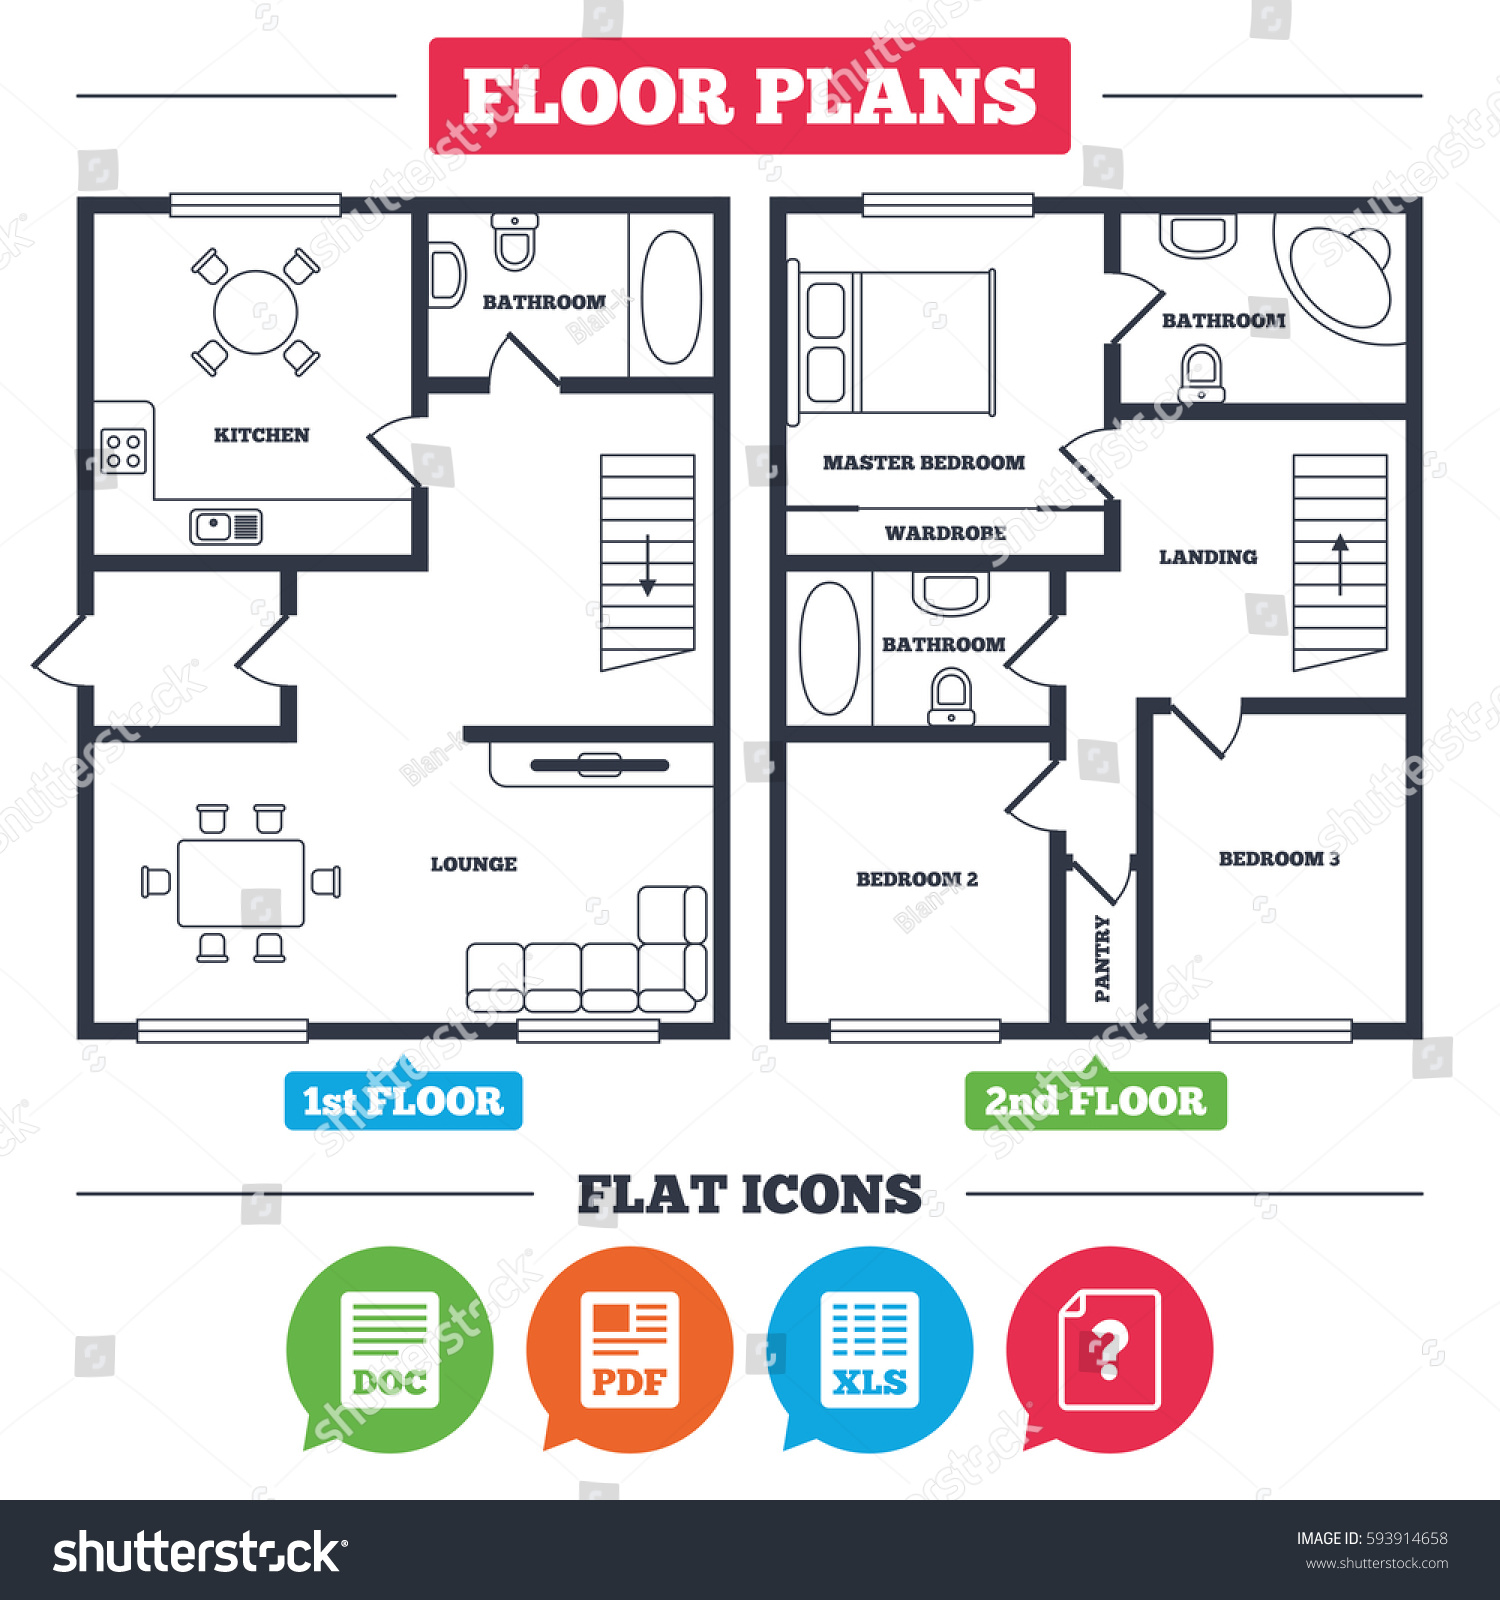 Architecture plan furniture house floor plan stock vector architecture plan with furniture house floor plan file document and question icons xls buycottarizona Images